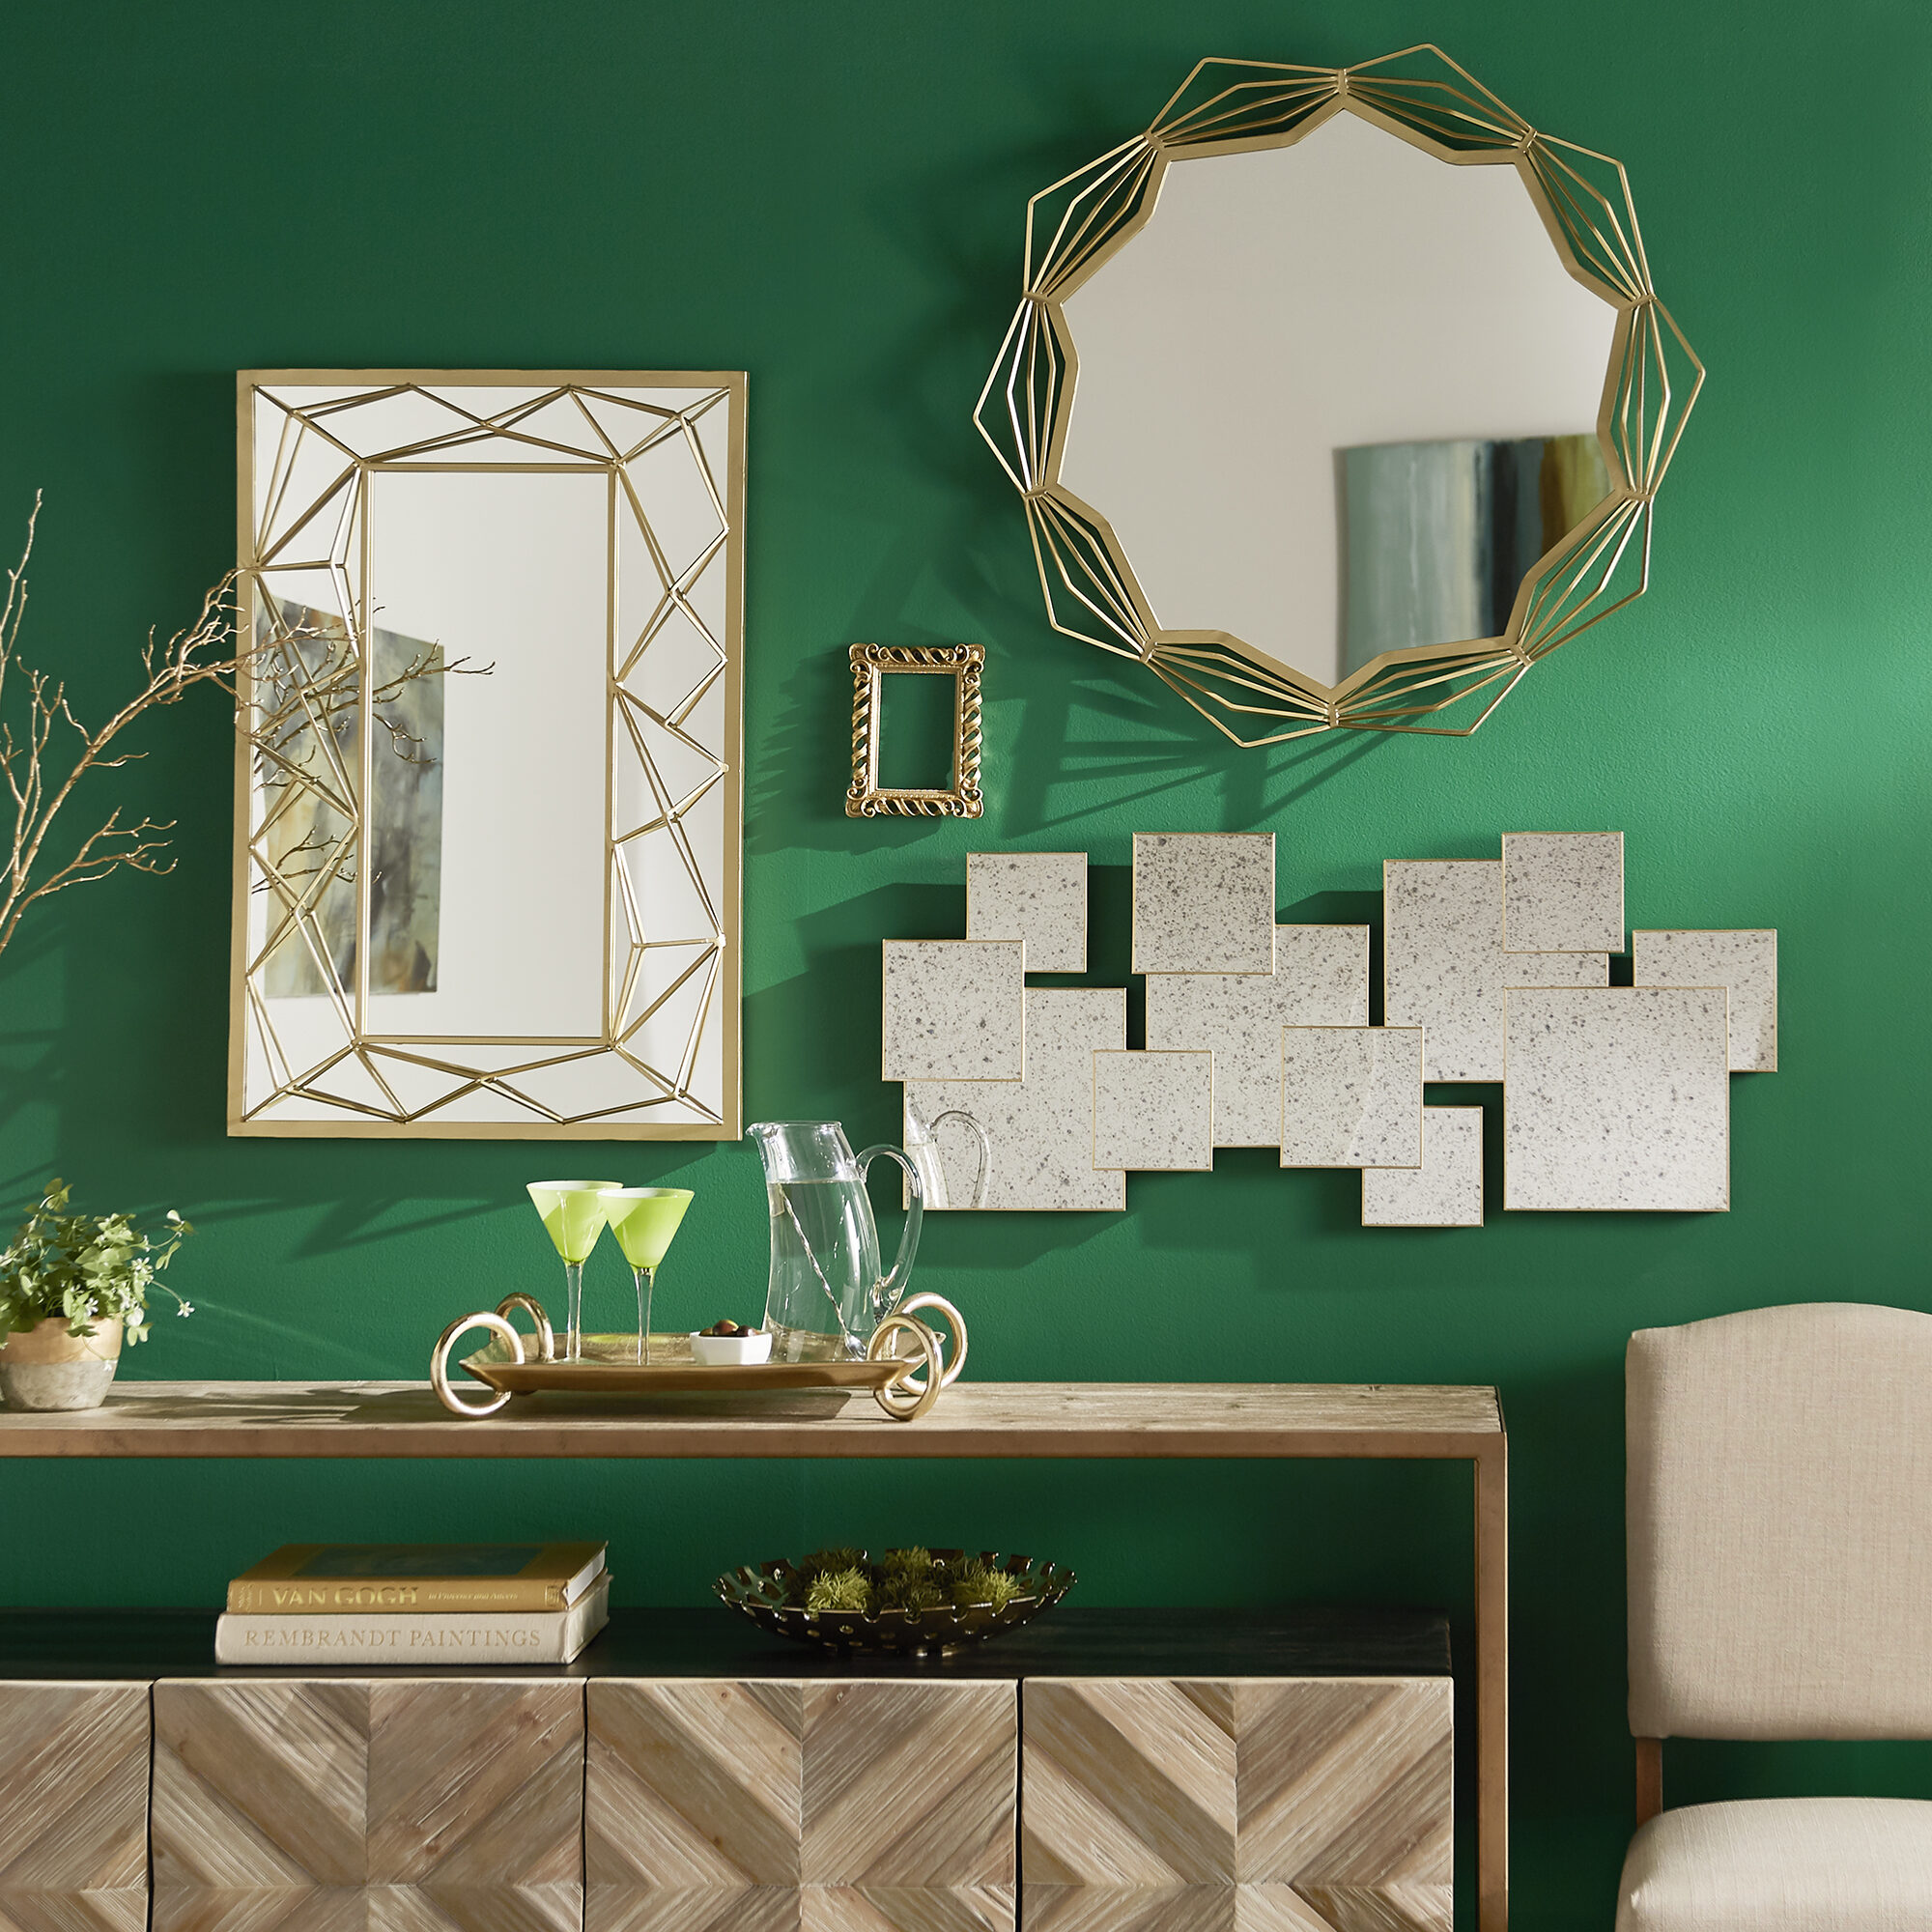 Here we have a gallery wall with a variety of mirrors. The mirrors all have different looks to them, but they share the same gold finishes for a cohesive and exciting look.